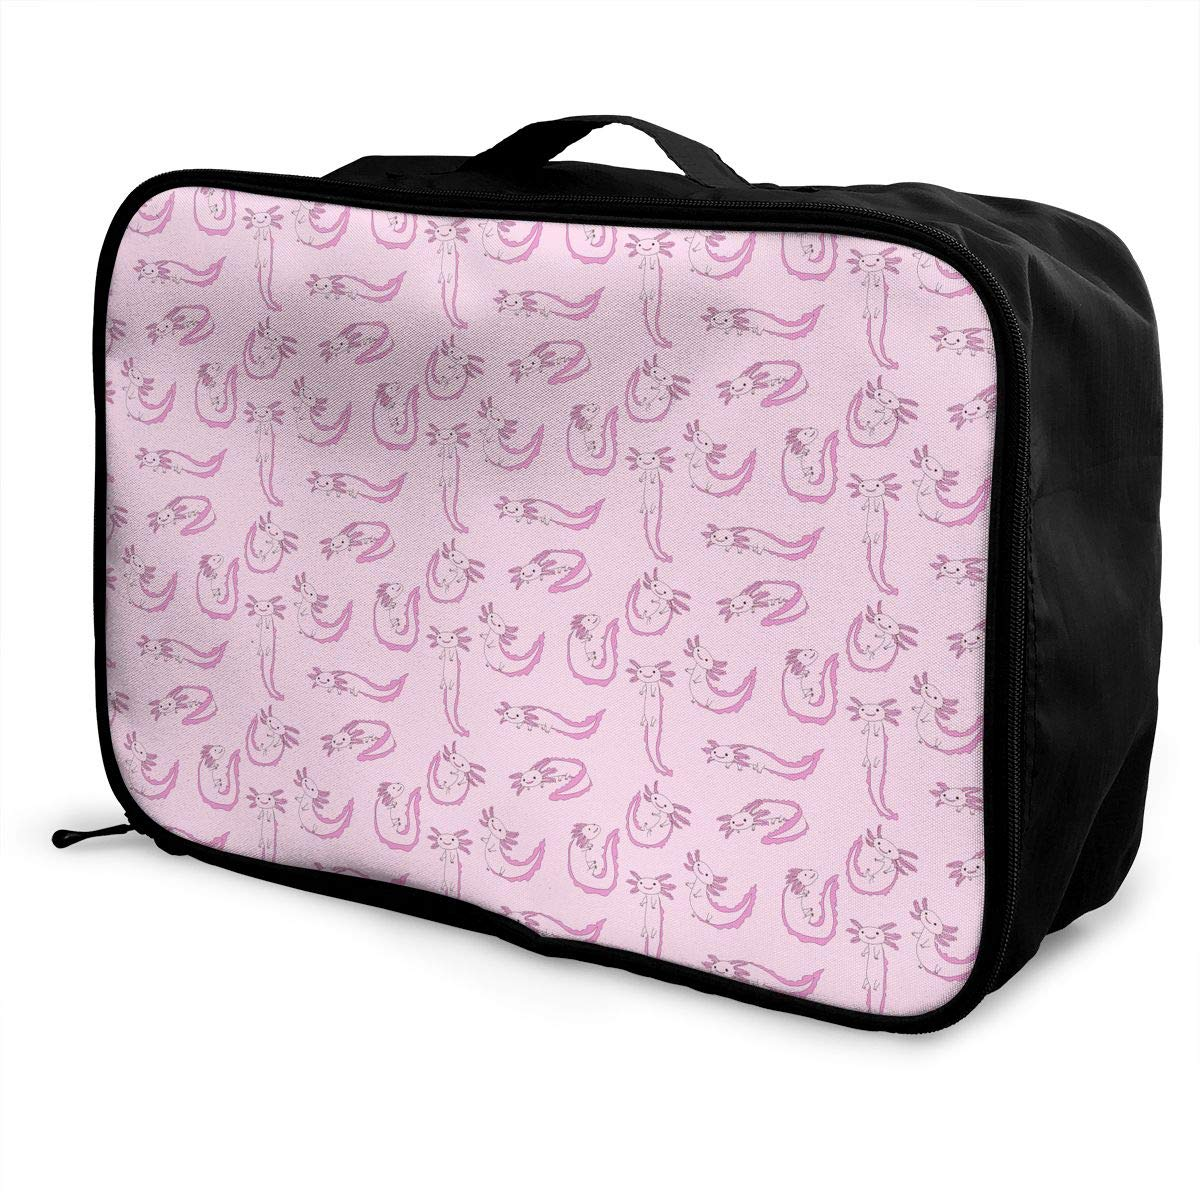 Travel Luggage Duffle Bag Lightweight Portable Handbag Pink Fox Pattern Large Capacity Waterproof Foldable Storage Tote